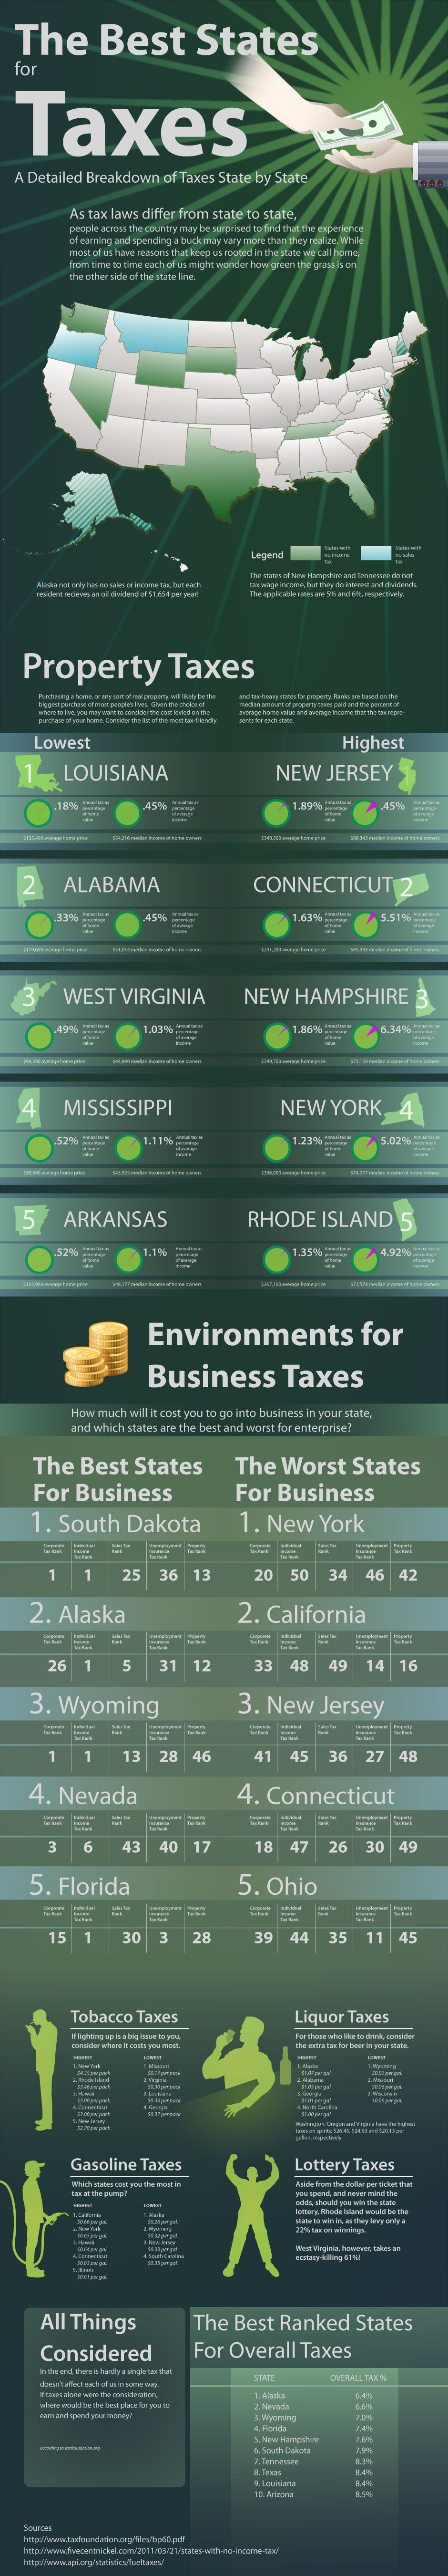 State by state comparison of taxes